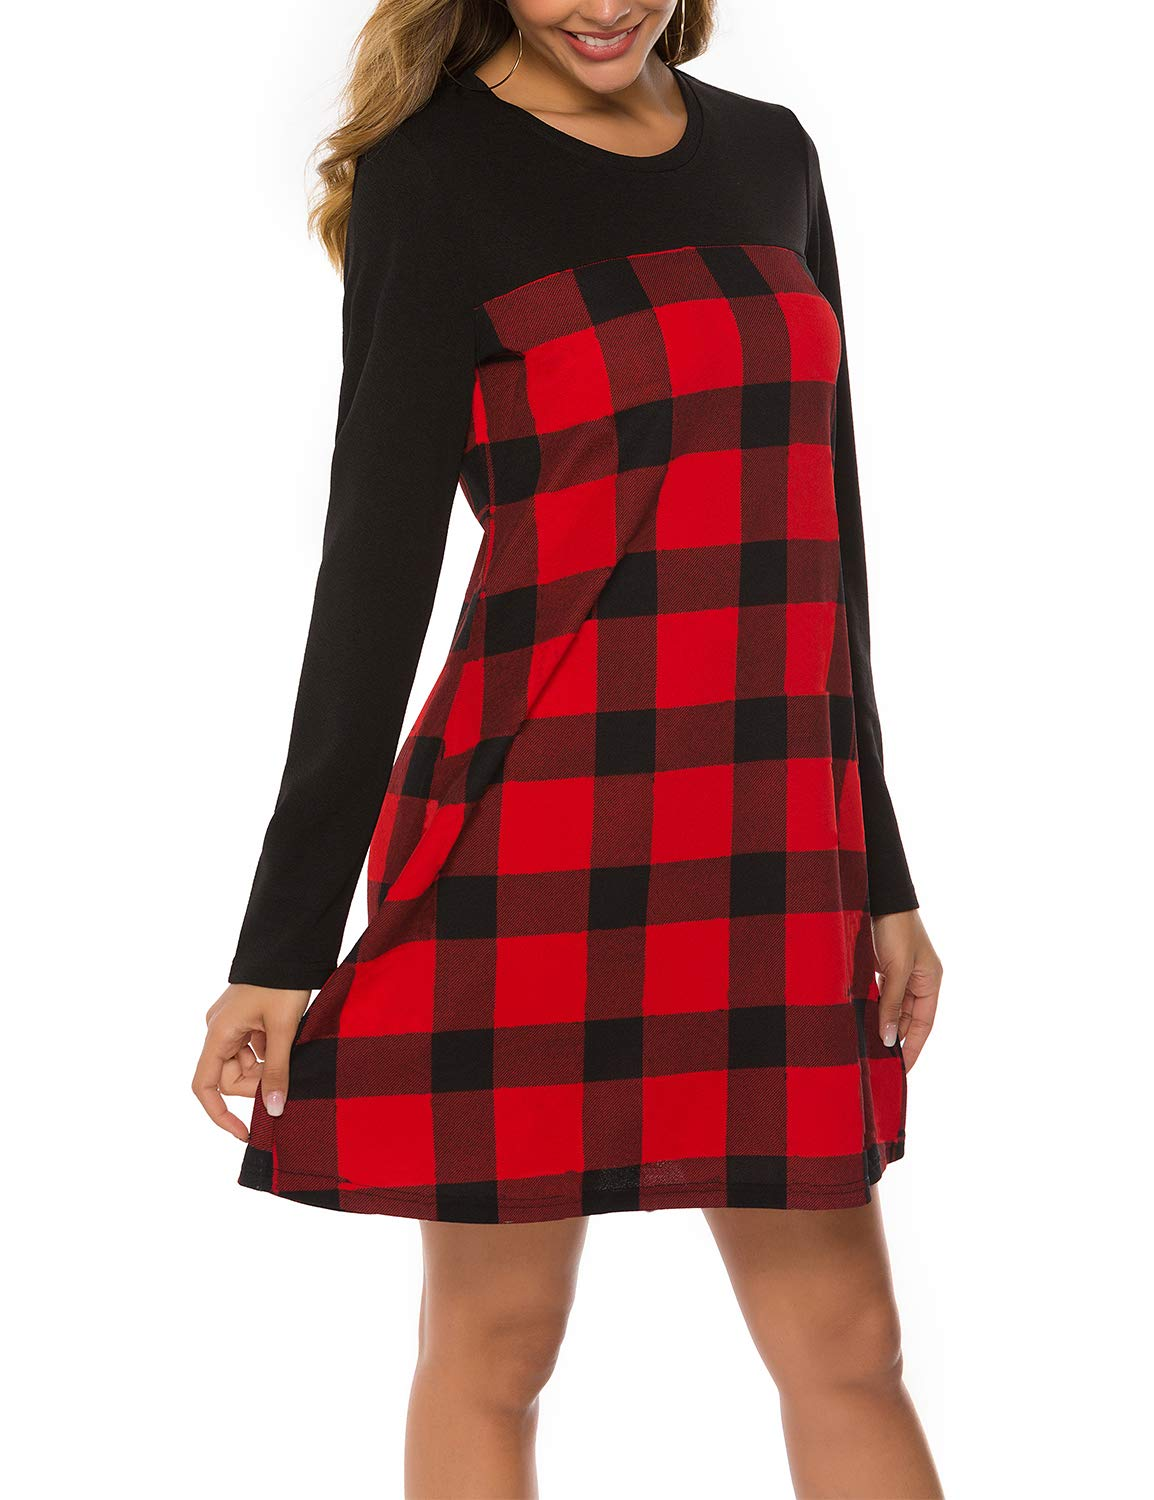 Blooming Jelly Women\'s Casual Plaid Dress Long Sleeve Round Neck Color Block Swing Tunic Dress(S, Red)